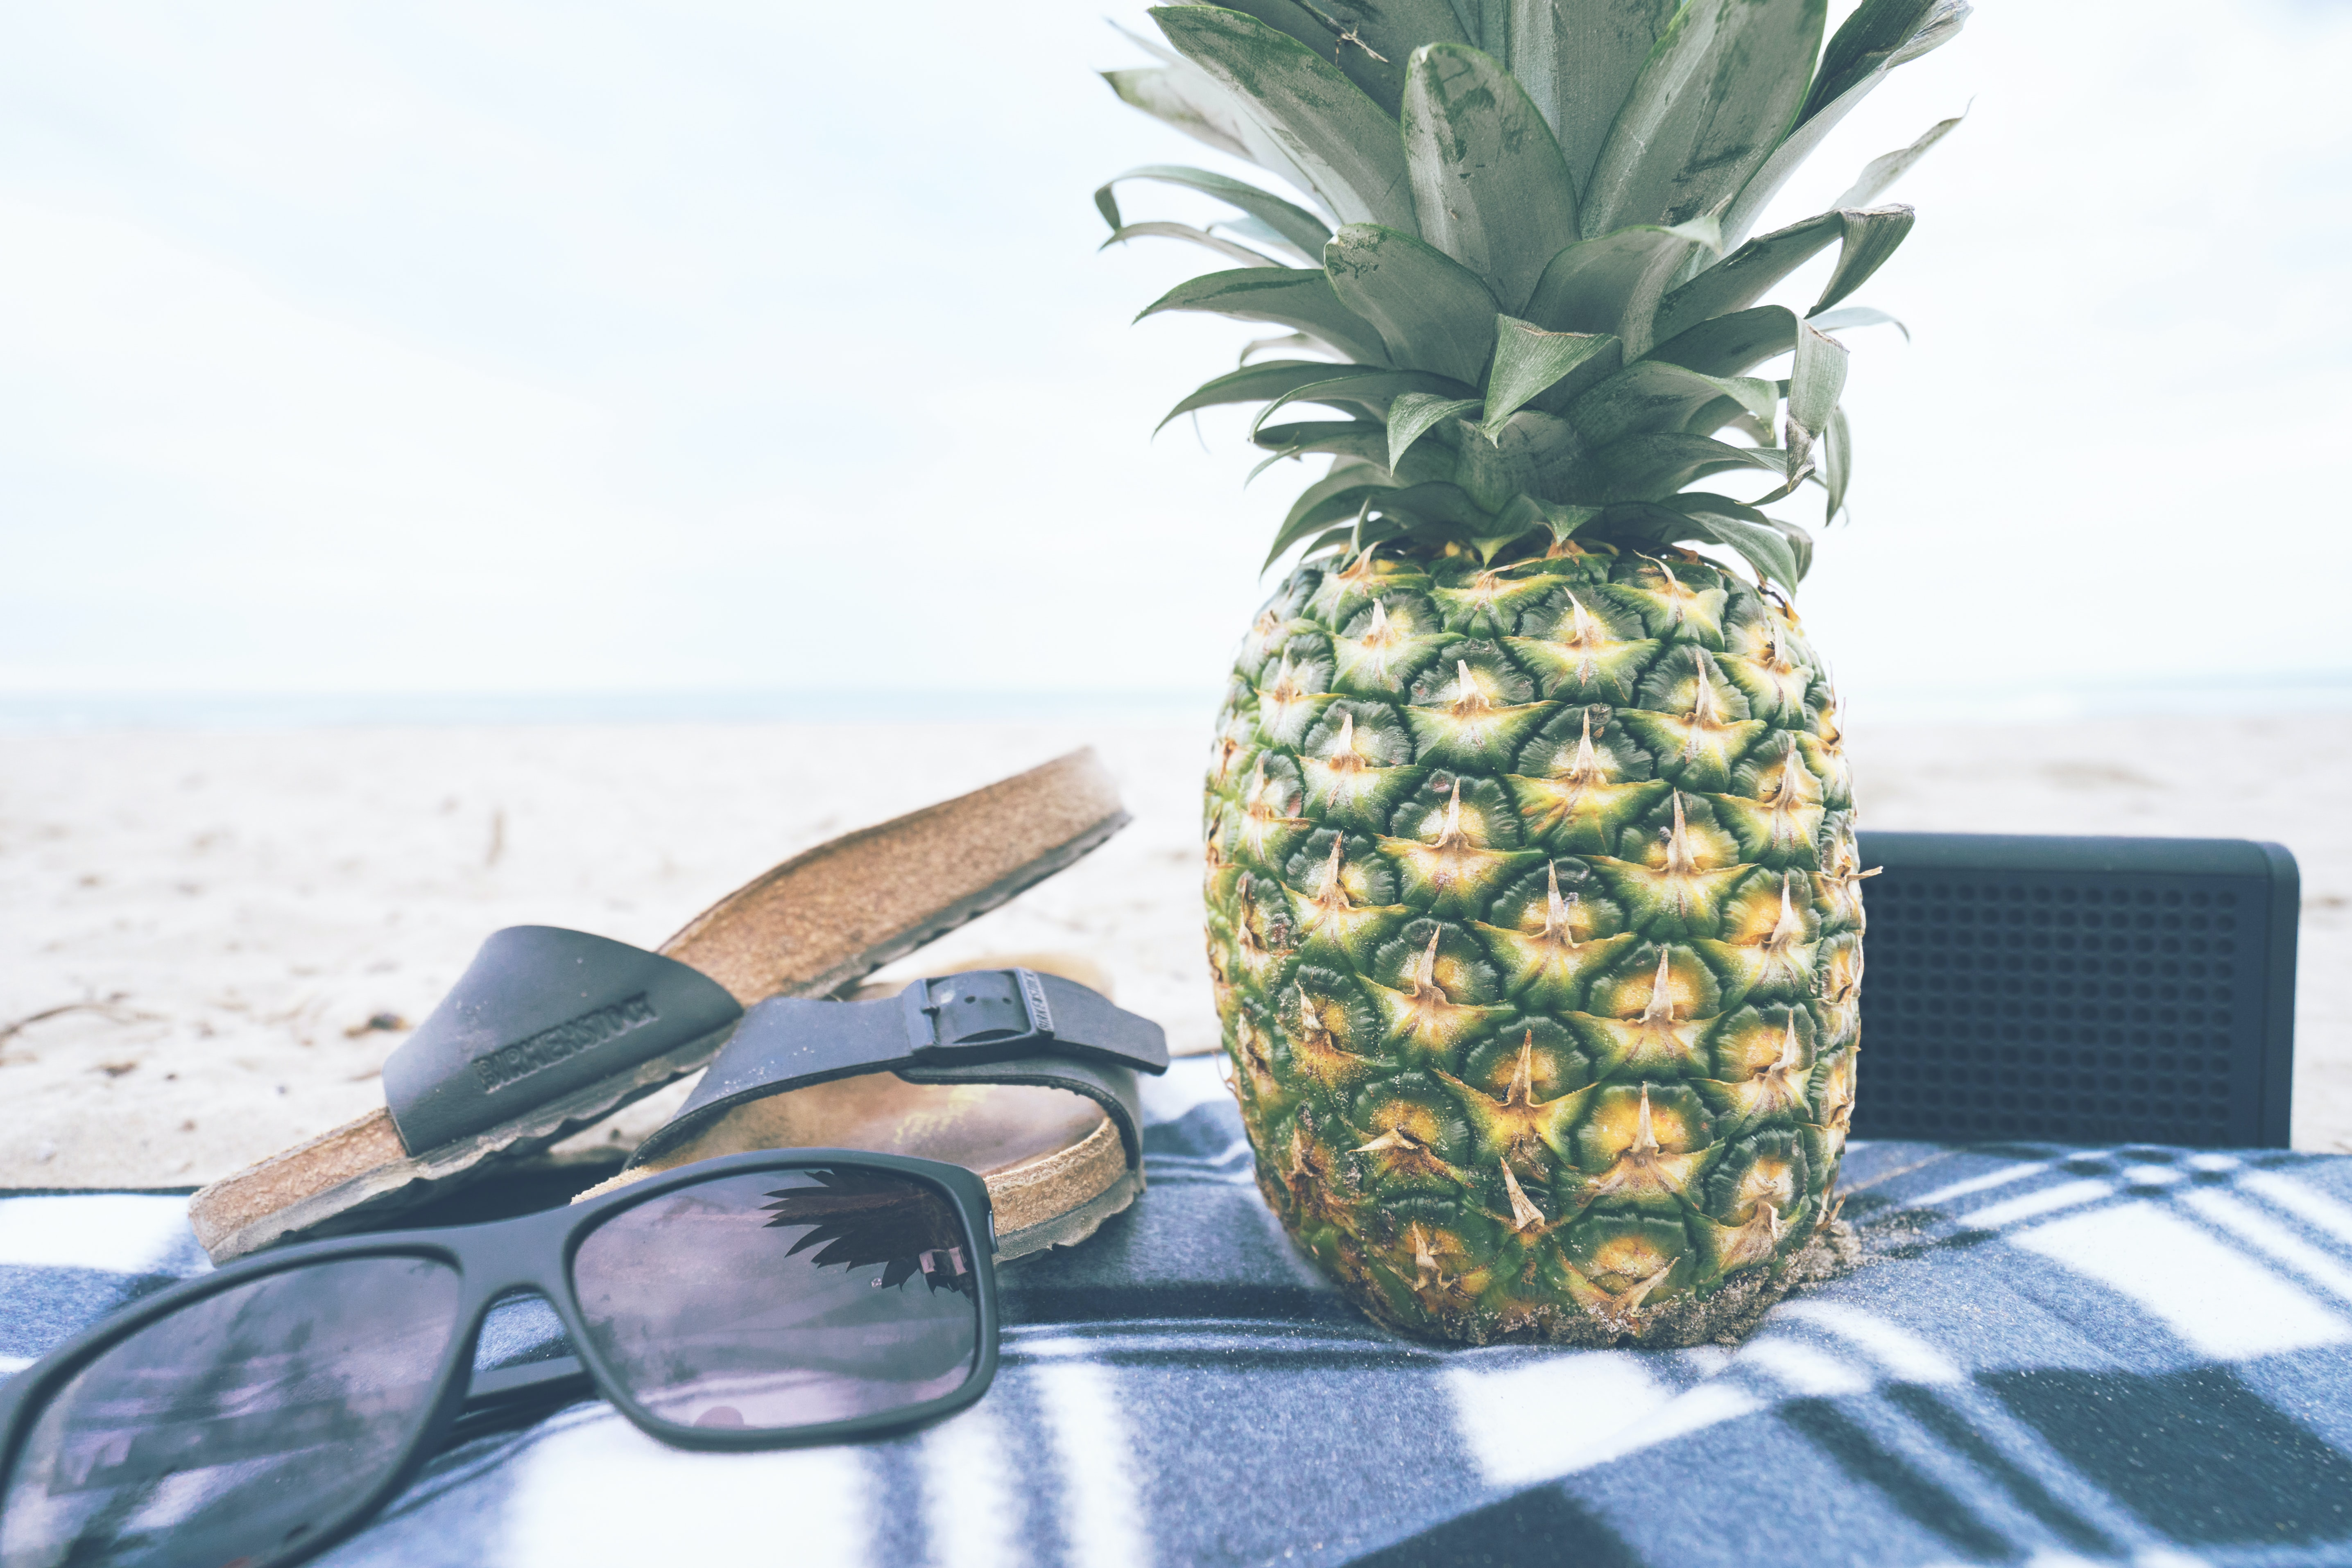 Fresh pineapple, sunglasses, flip-flops, and a Bluetooth speaker on the beach